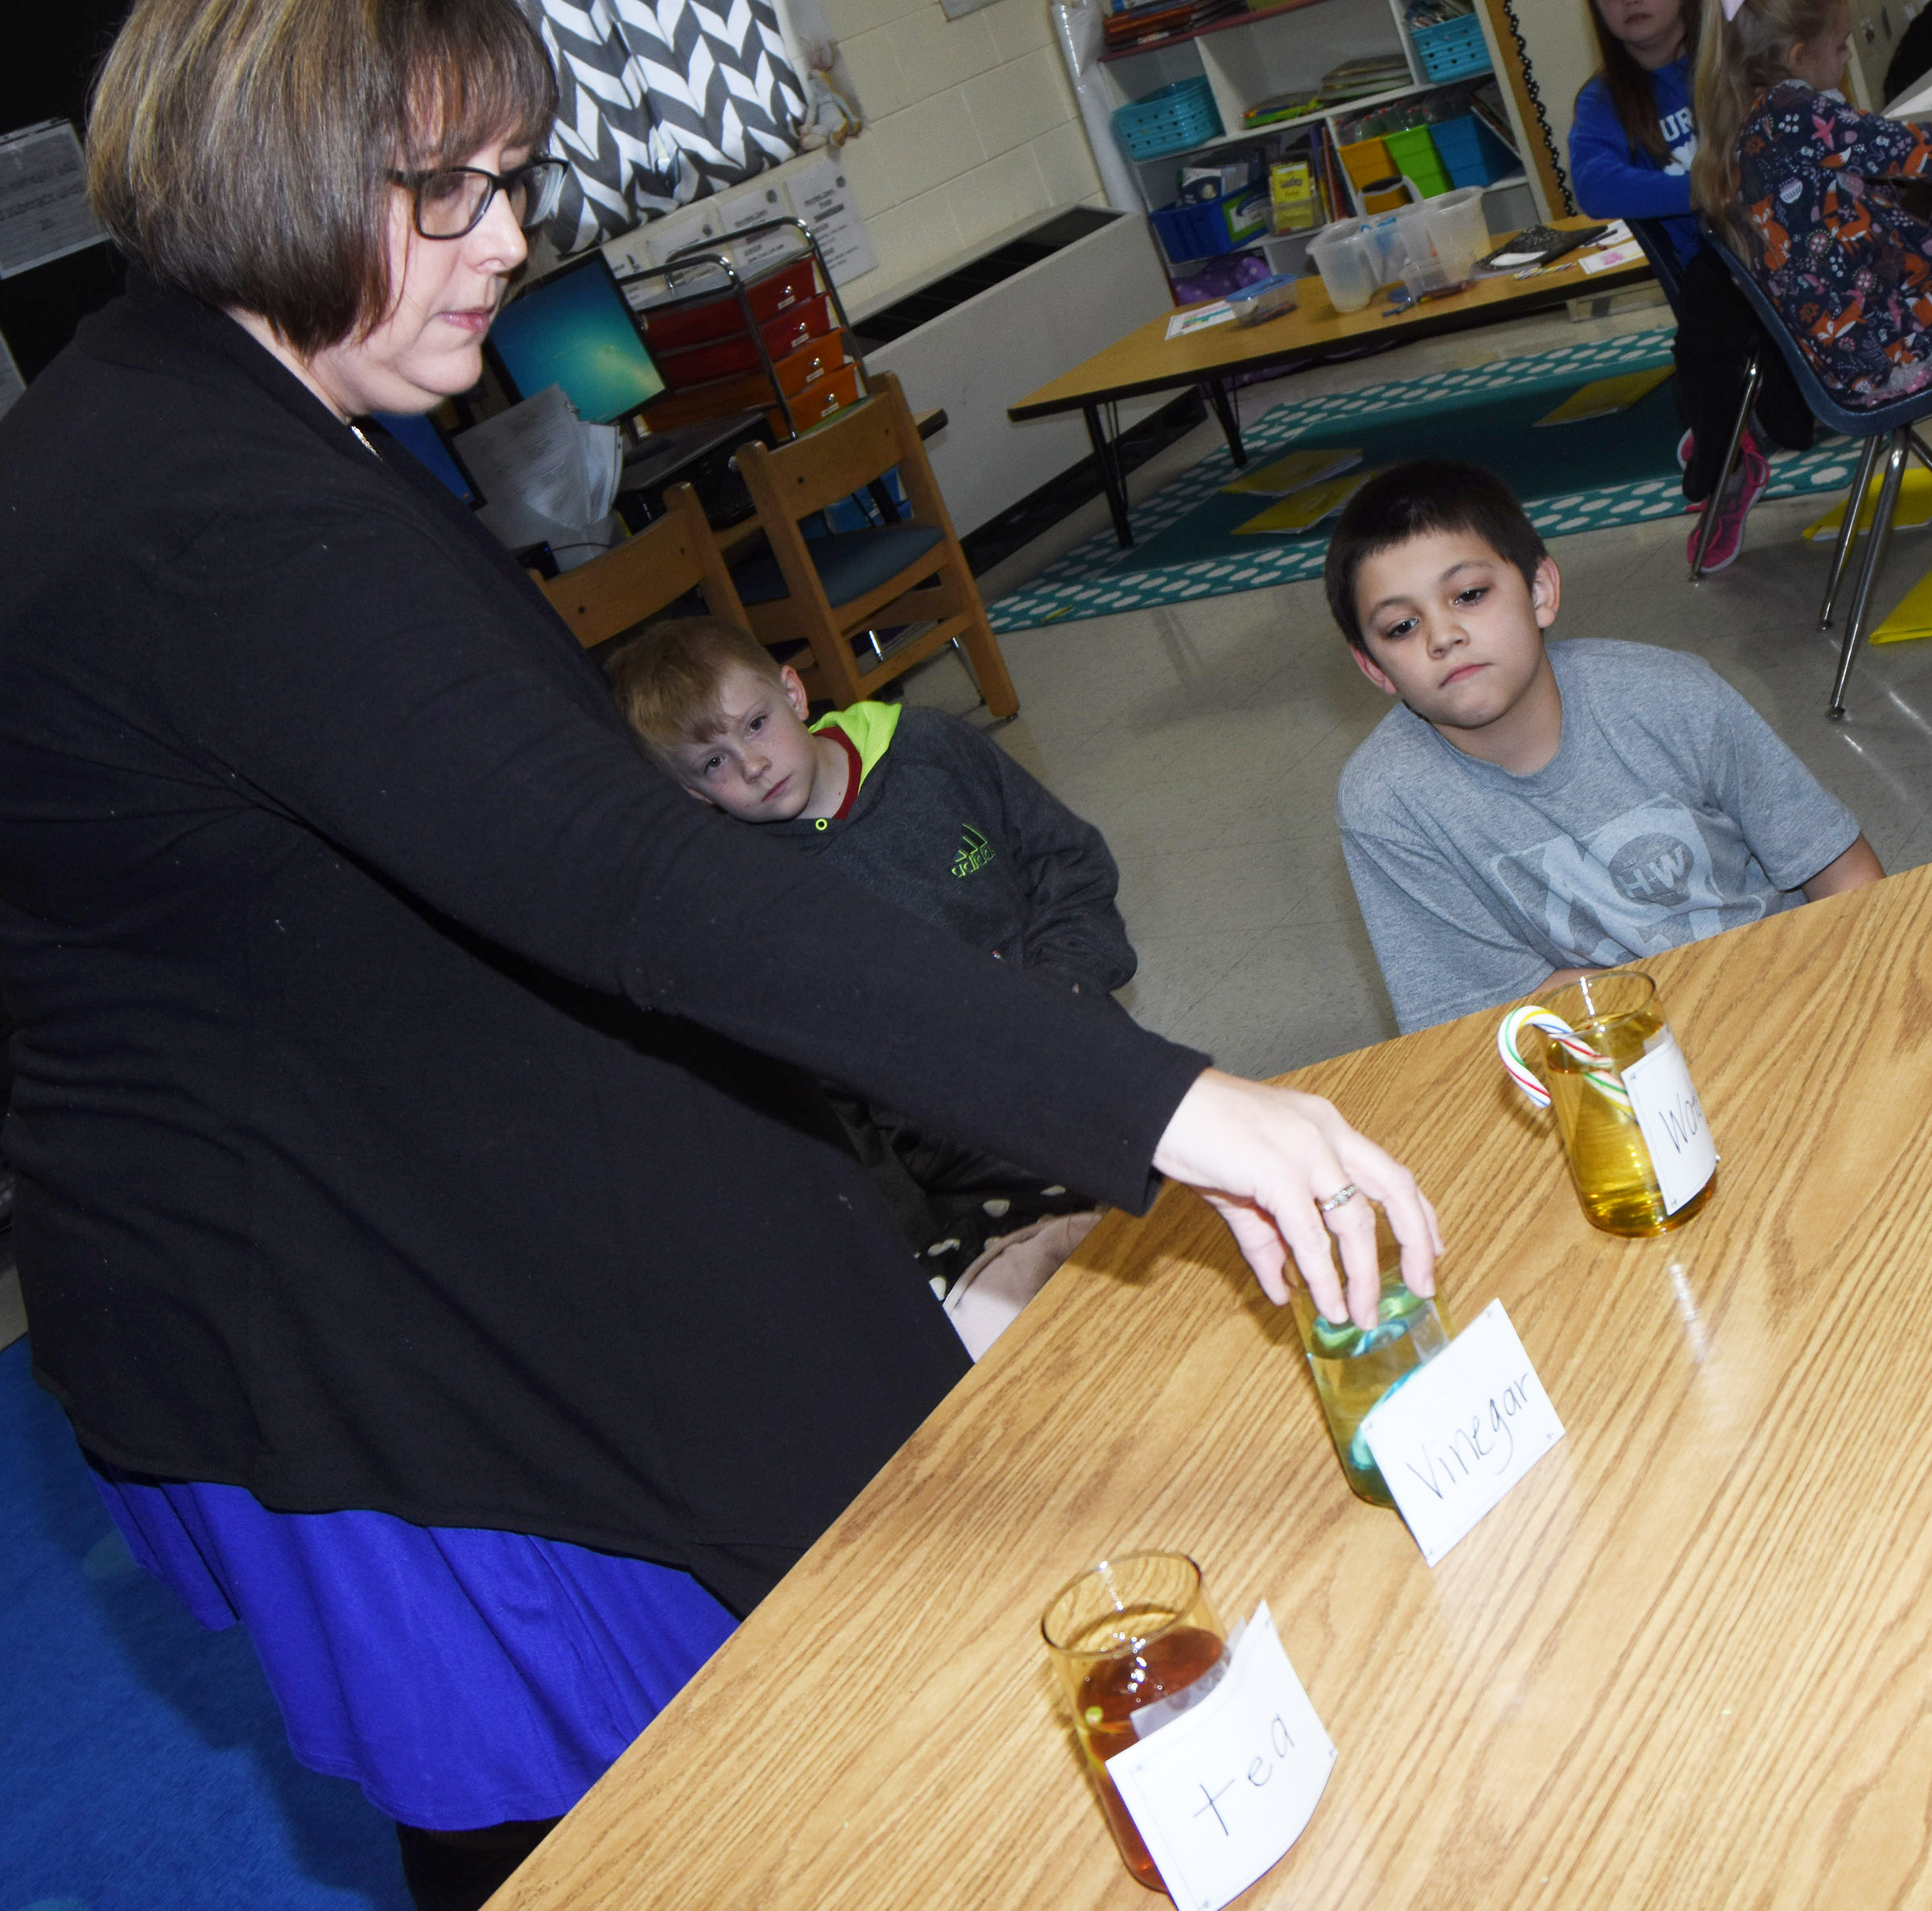 CES second-grade teacher Lynne Horn places candy canes in tea, vinegar and water for her students to observe the chemical reactions. Pictured are Gage Henderson, center, and Keagan Shearer.